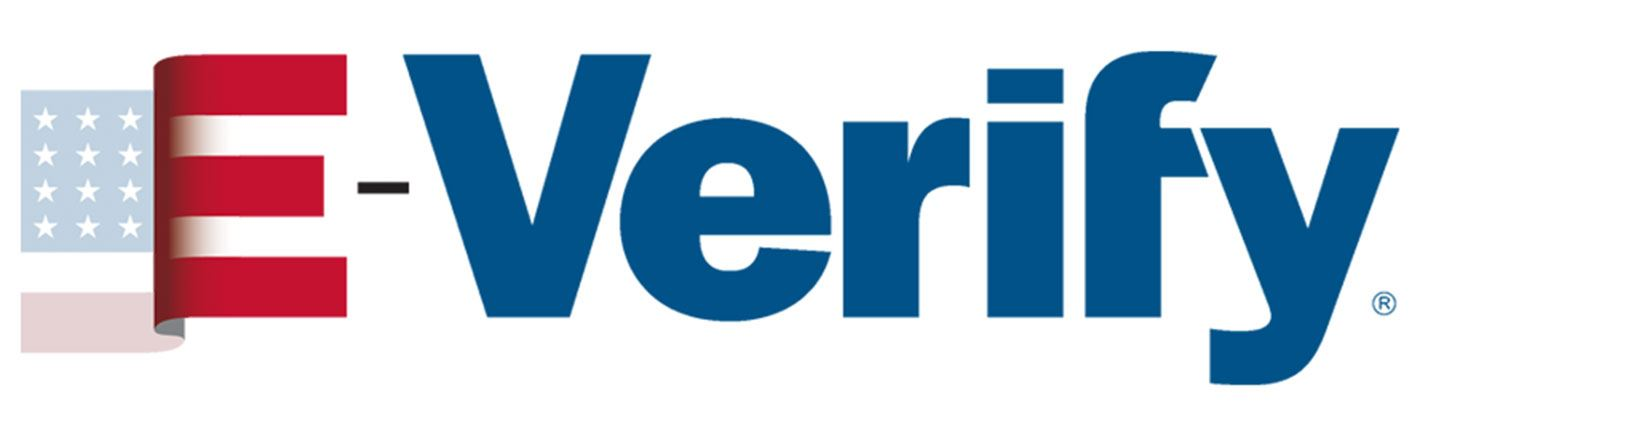 E-Verify Program Logo